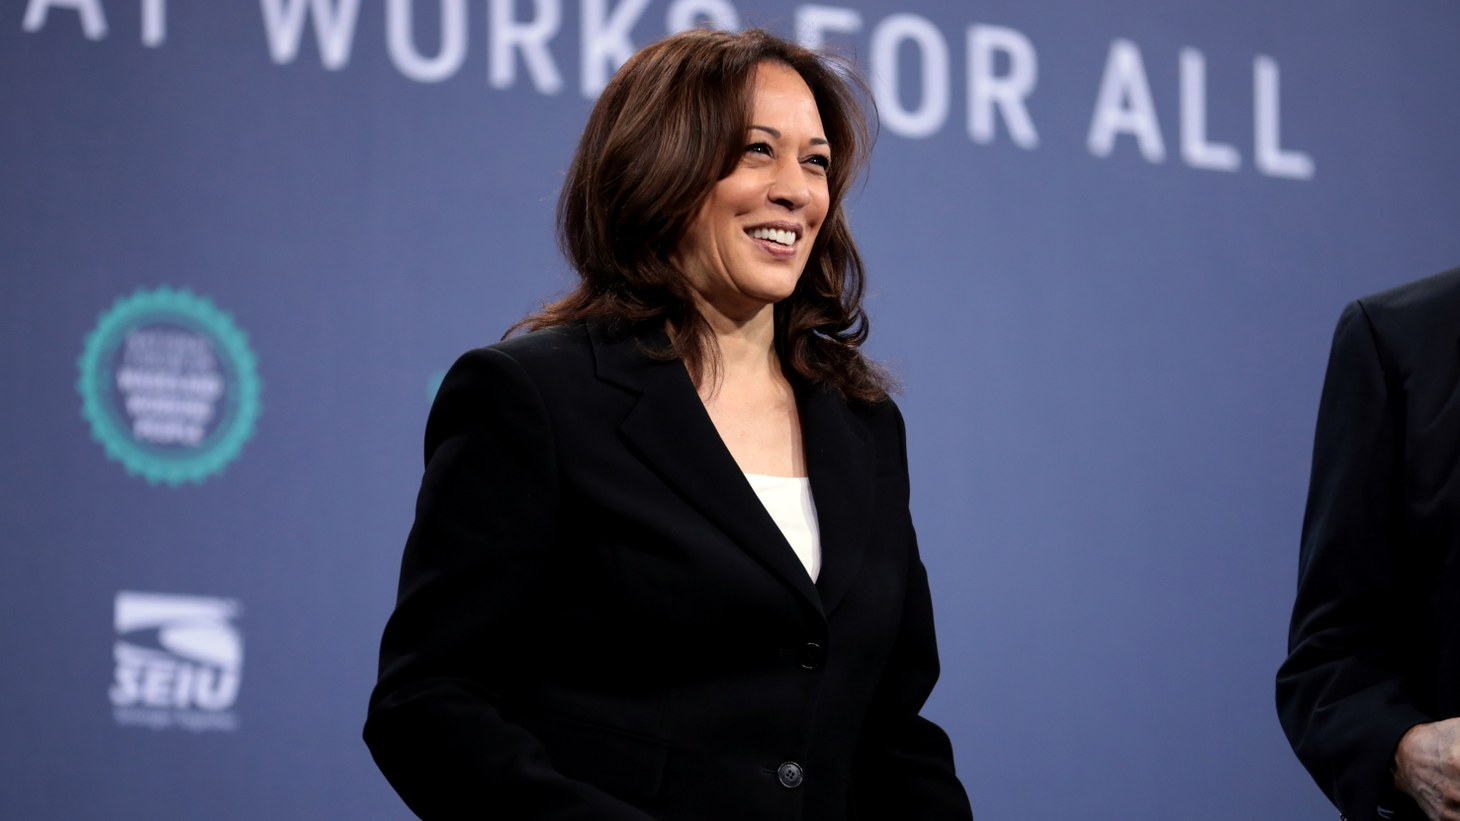 U.S. Senator Kamala Harris speaking with attendees at the 2019 National Forum on Wages and Working People, hosted by the Center for the American Progress Action Fund and the SEIU, at the Enclave in Las Vegas, Nevada.